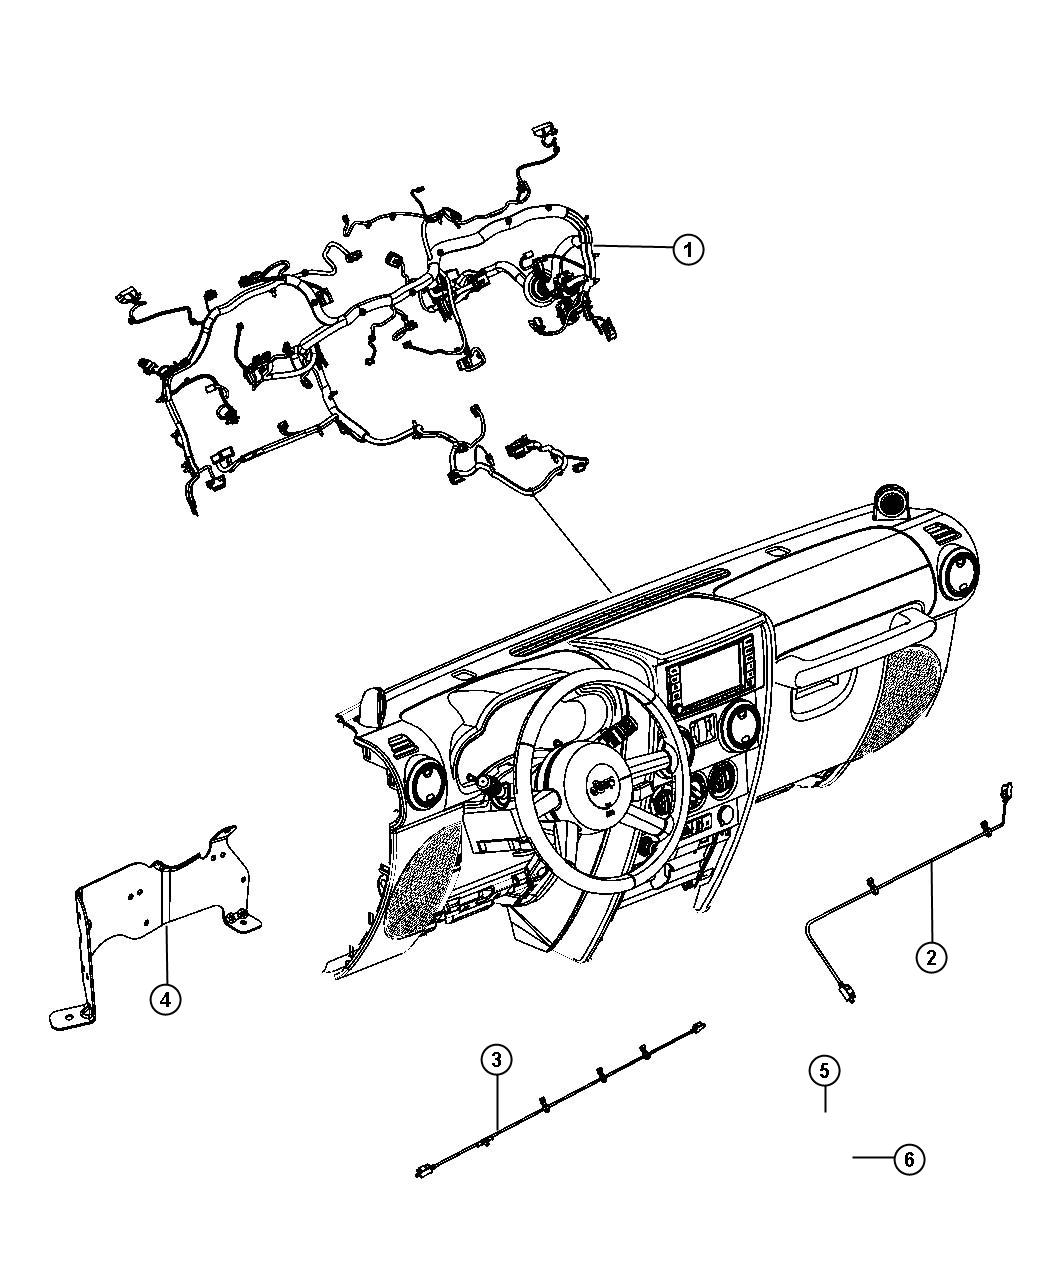 Jeep Wrangler Wiring. Instrument panel. Export. [manual